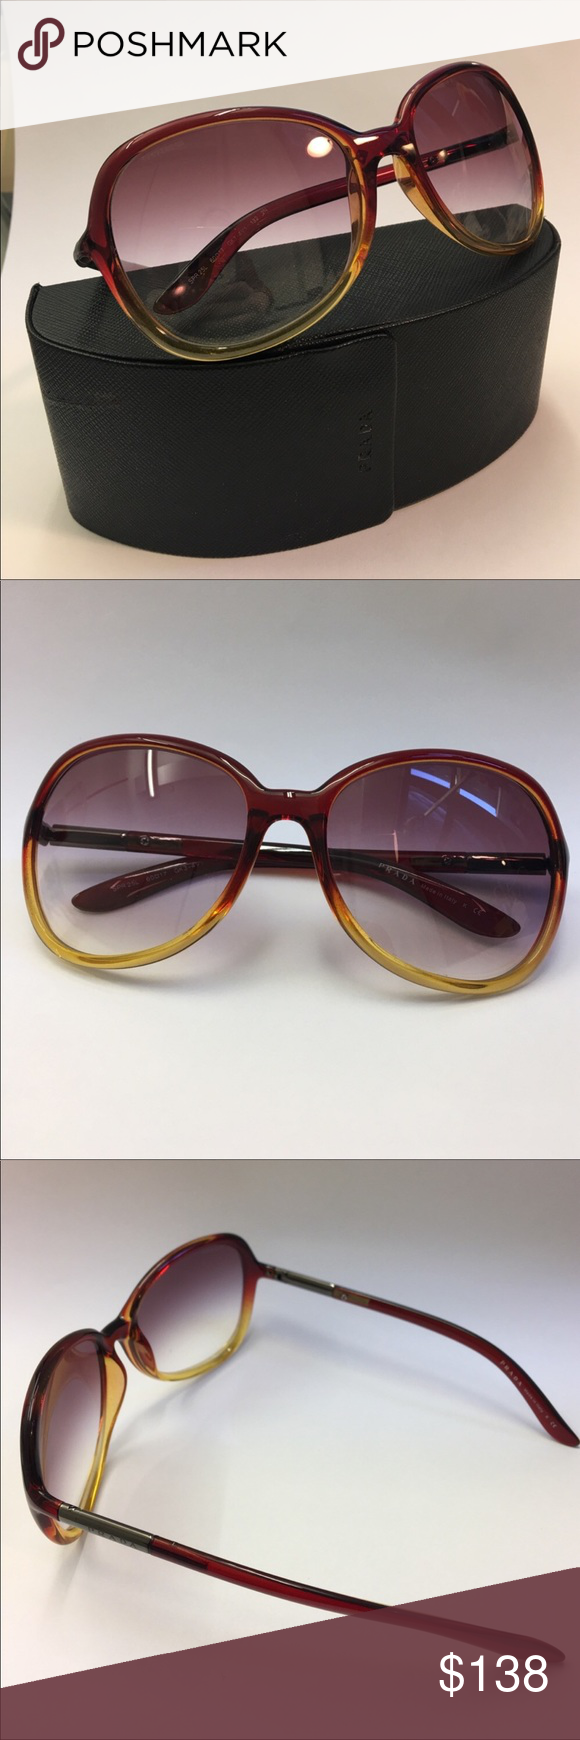 ba4a9a257dca ... sale like new prada oversized ombre sunglasses spr 25l red like brown  turns to yellow 71f9b